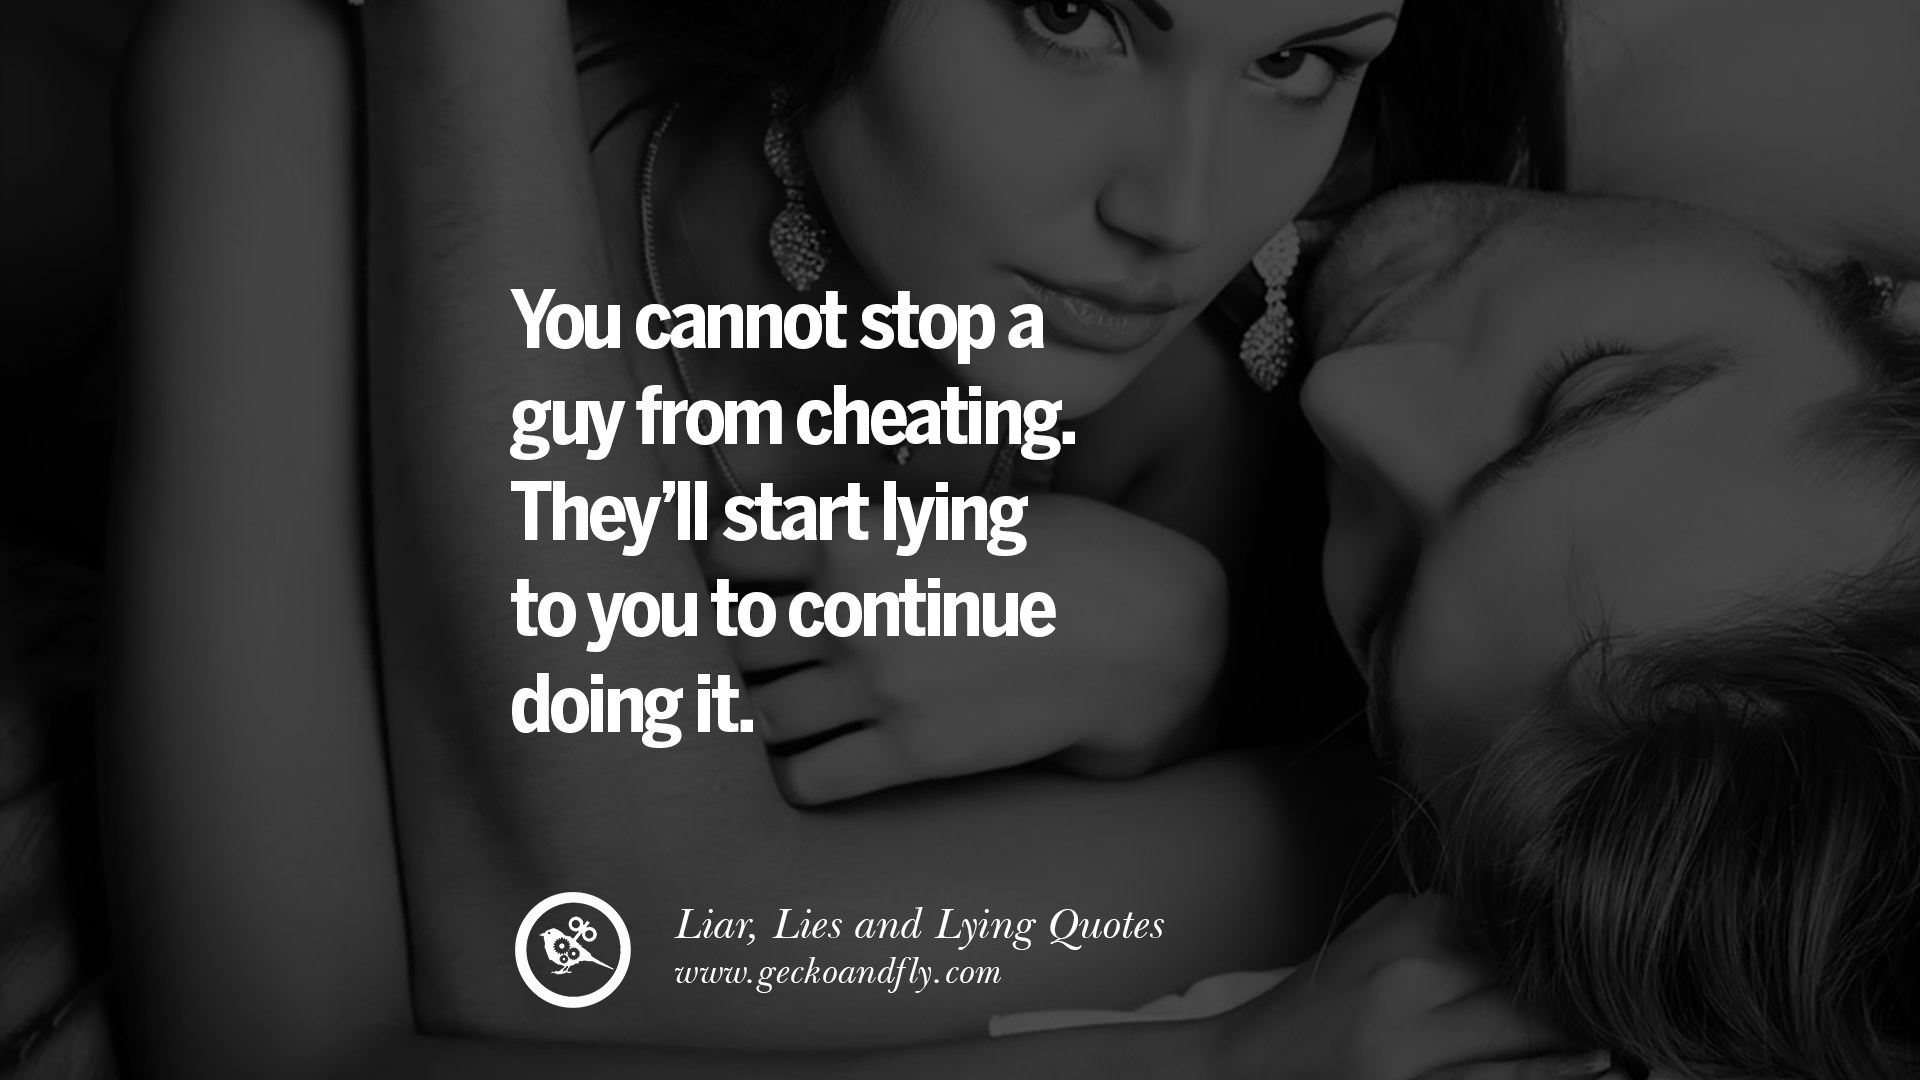 Hookup A Pathological Liar And Cheater